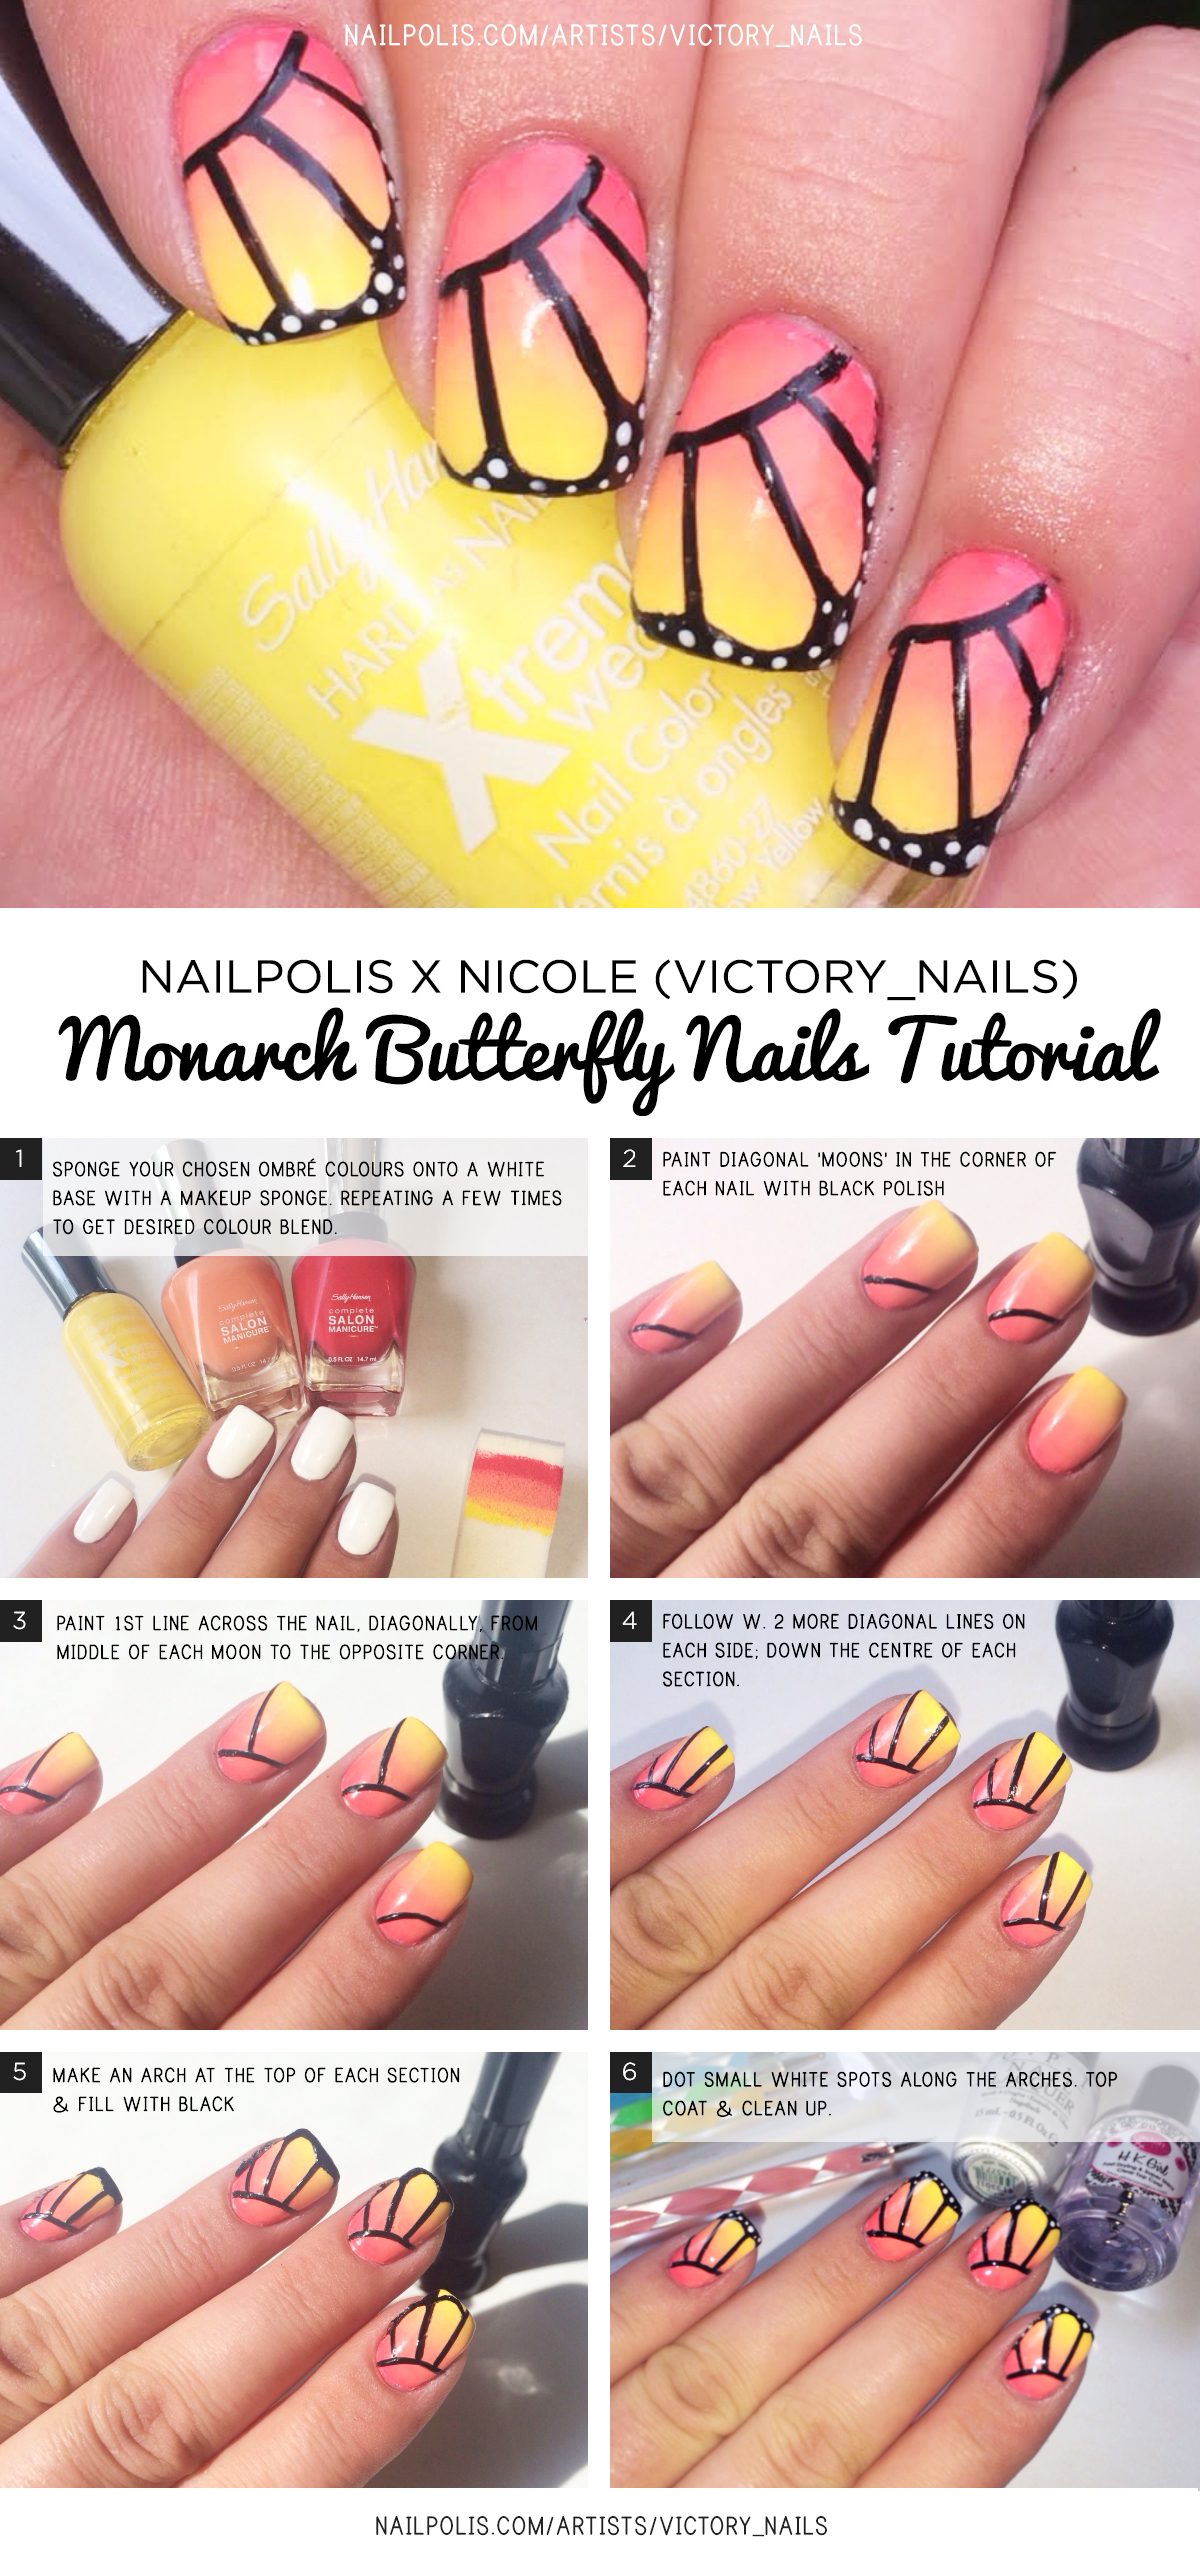 nail art tutorial | Nailpolis Magazine